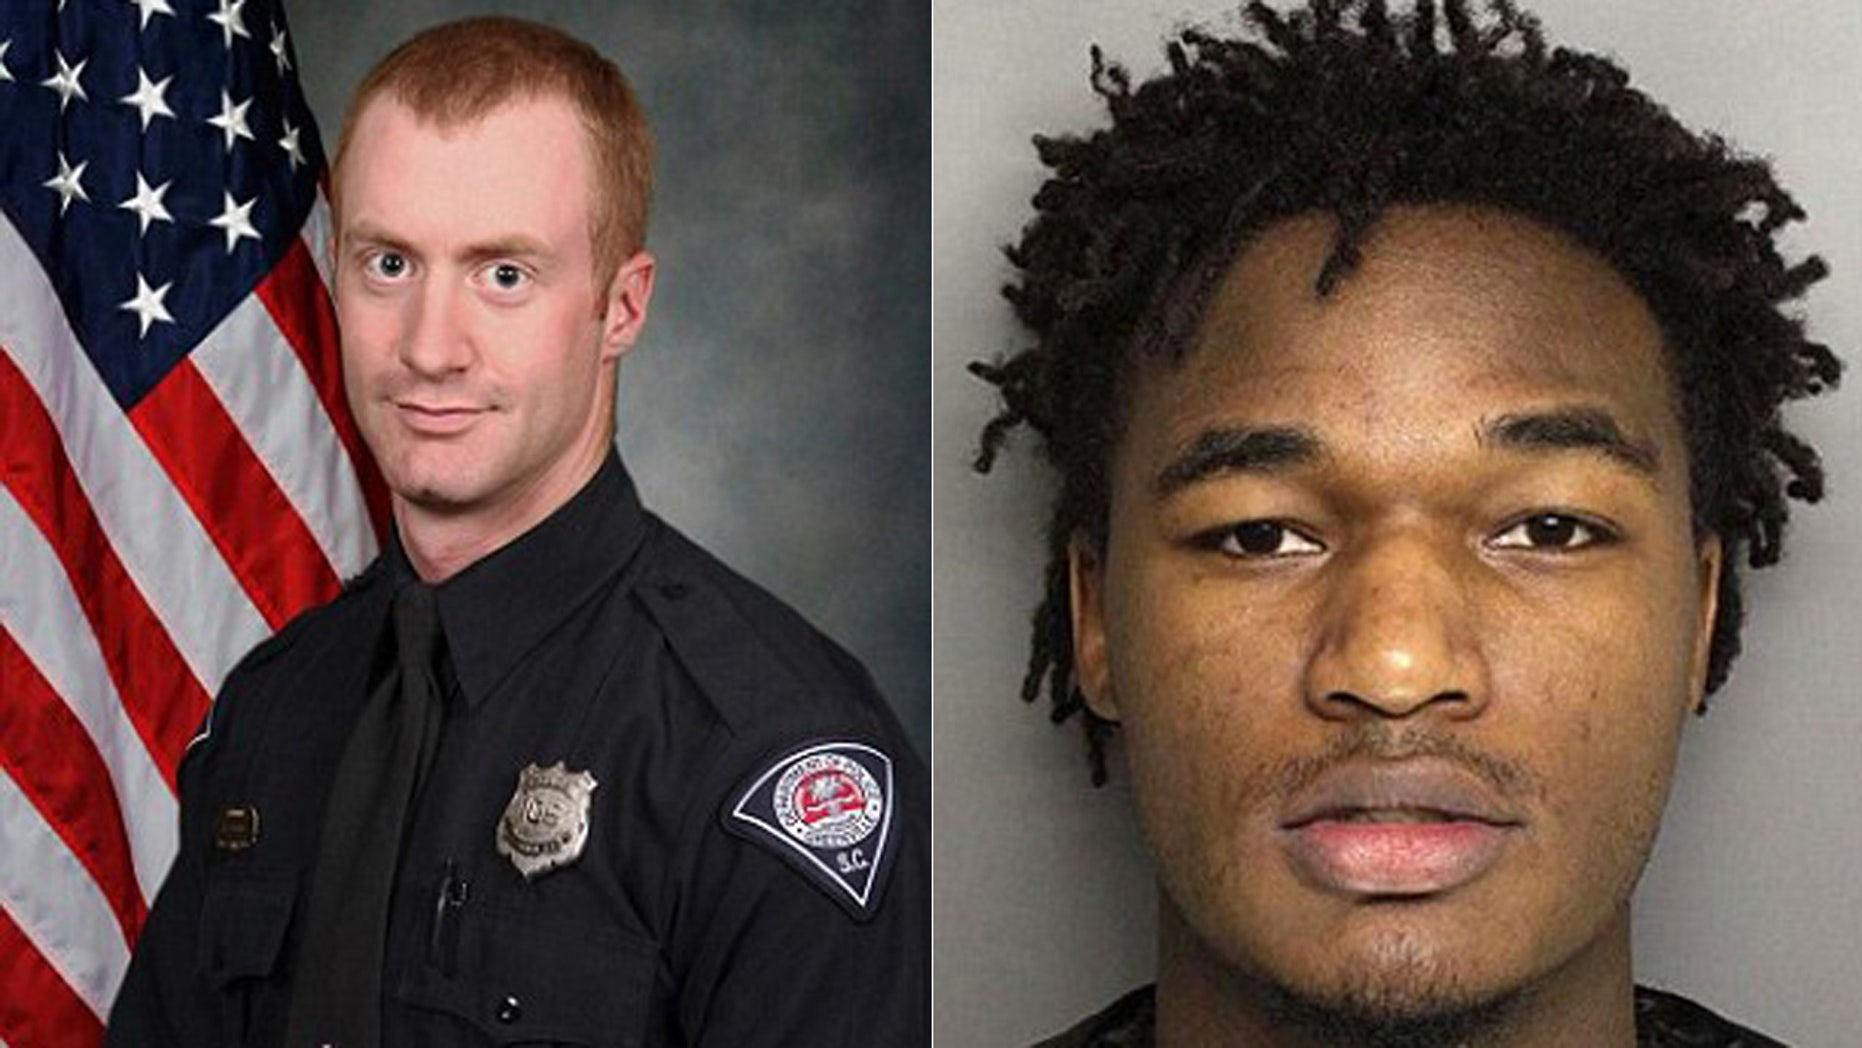 Greenville Police Officer Allen Jacobs, left; Deontea Perry Mackey, right, is the suspect Jacobs was pursuing.